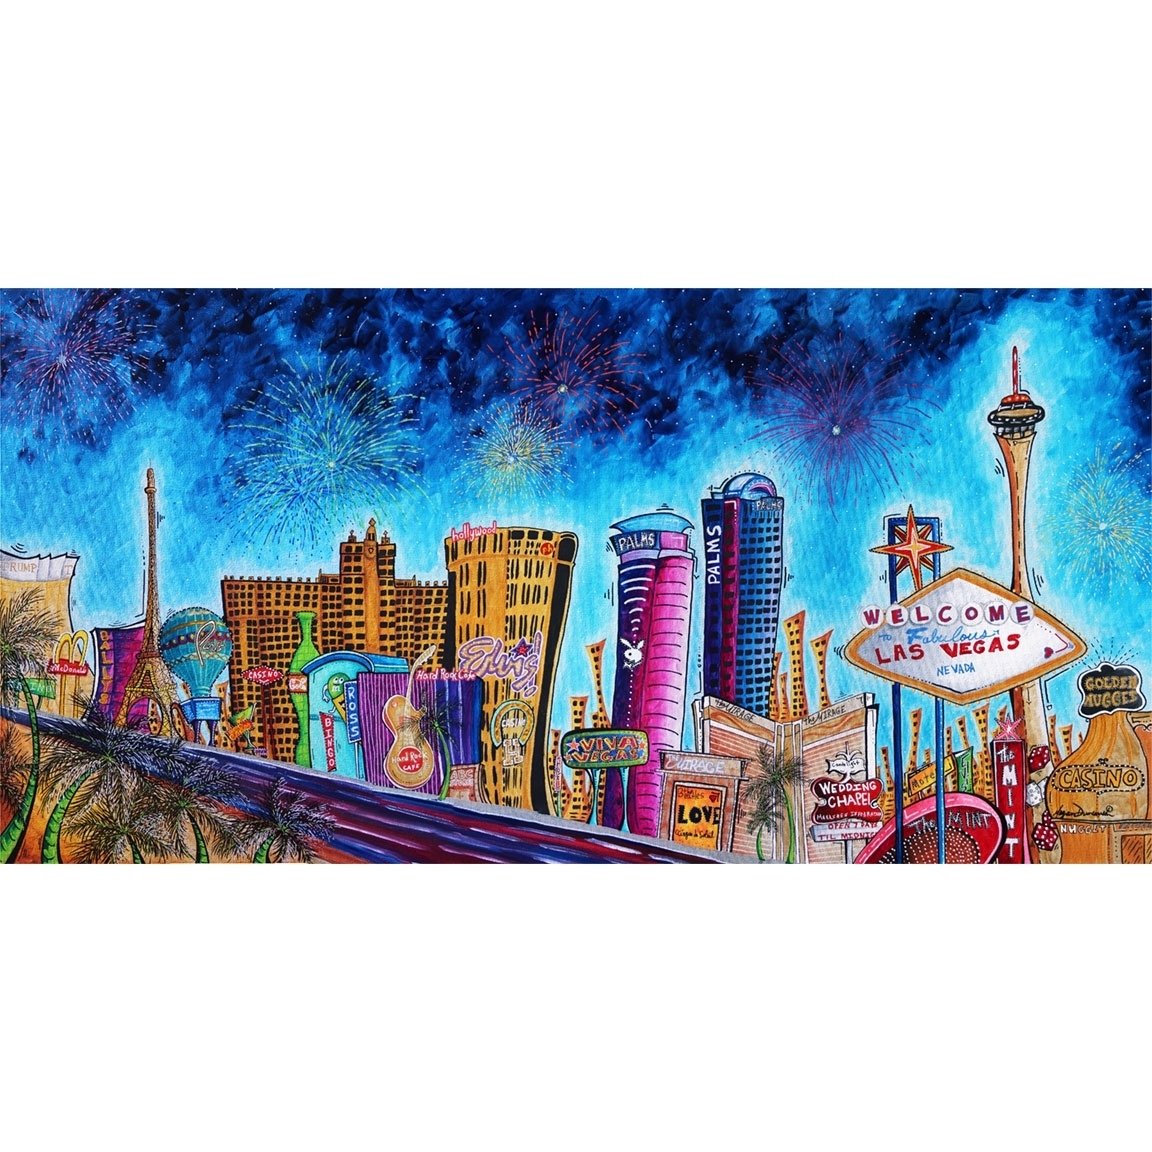 "Viva Las Vegas"" Original Pop Art Style Colorful Vegas Strip Intended For 2017 Las Vegas Canvas Wall Art (View 12 of 15)"